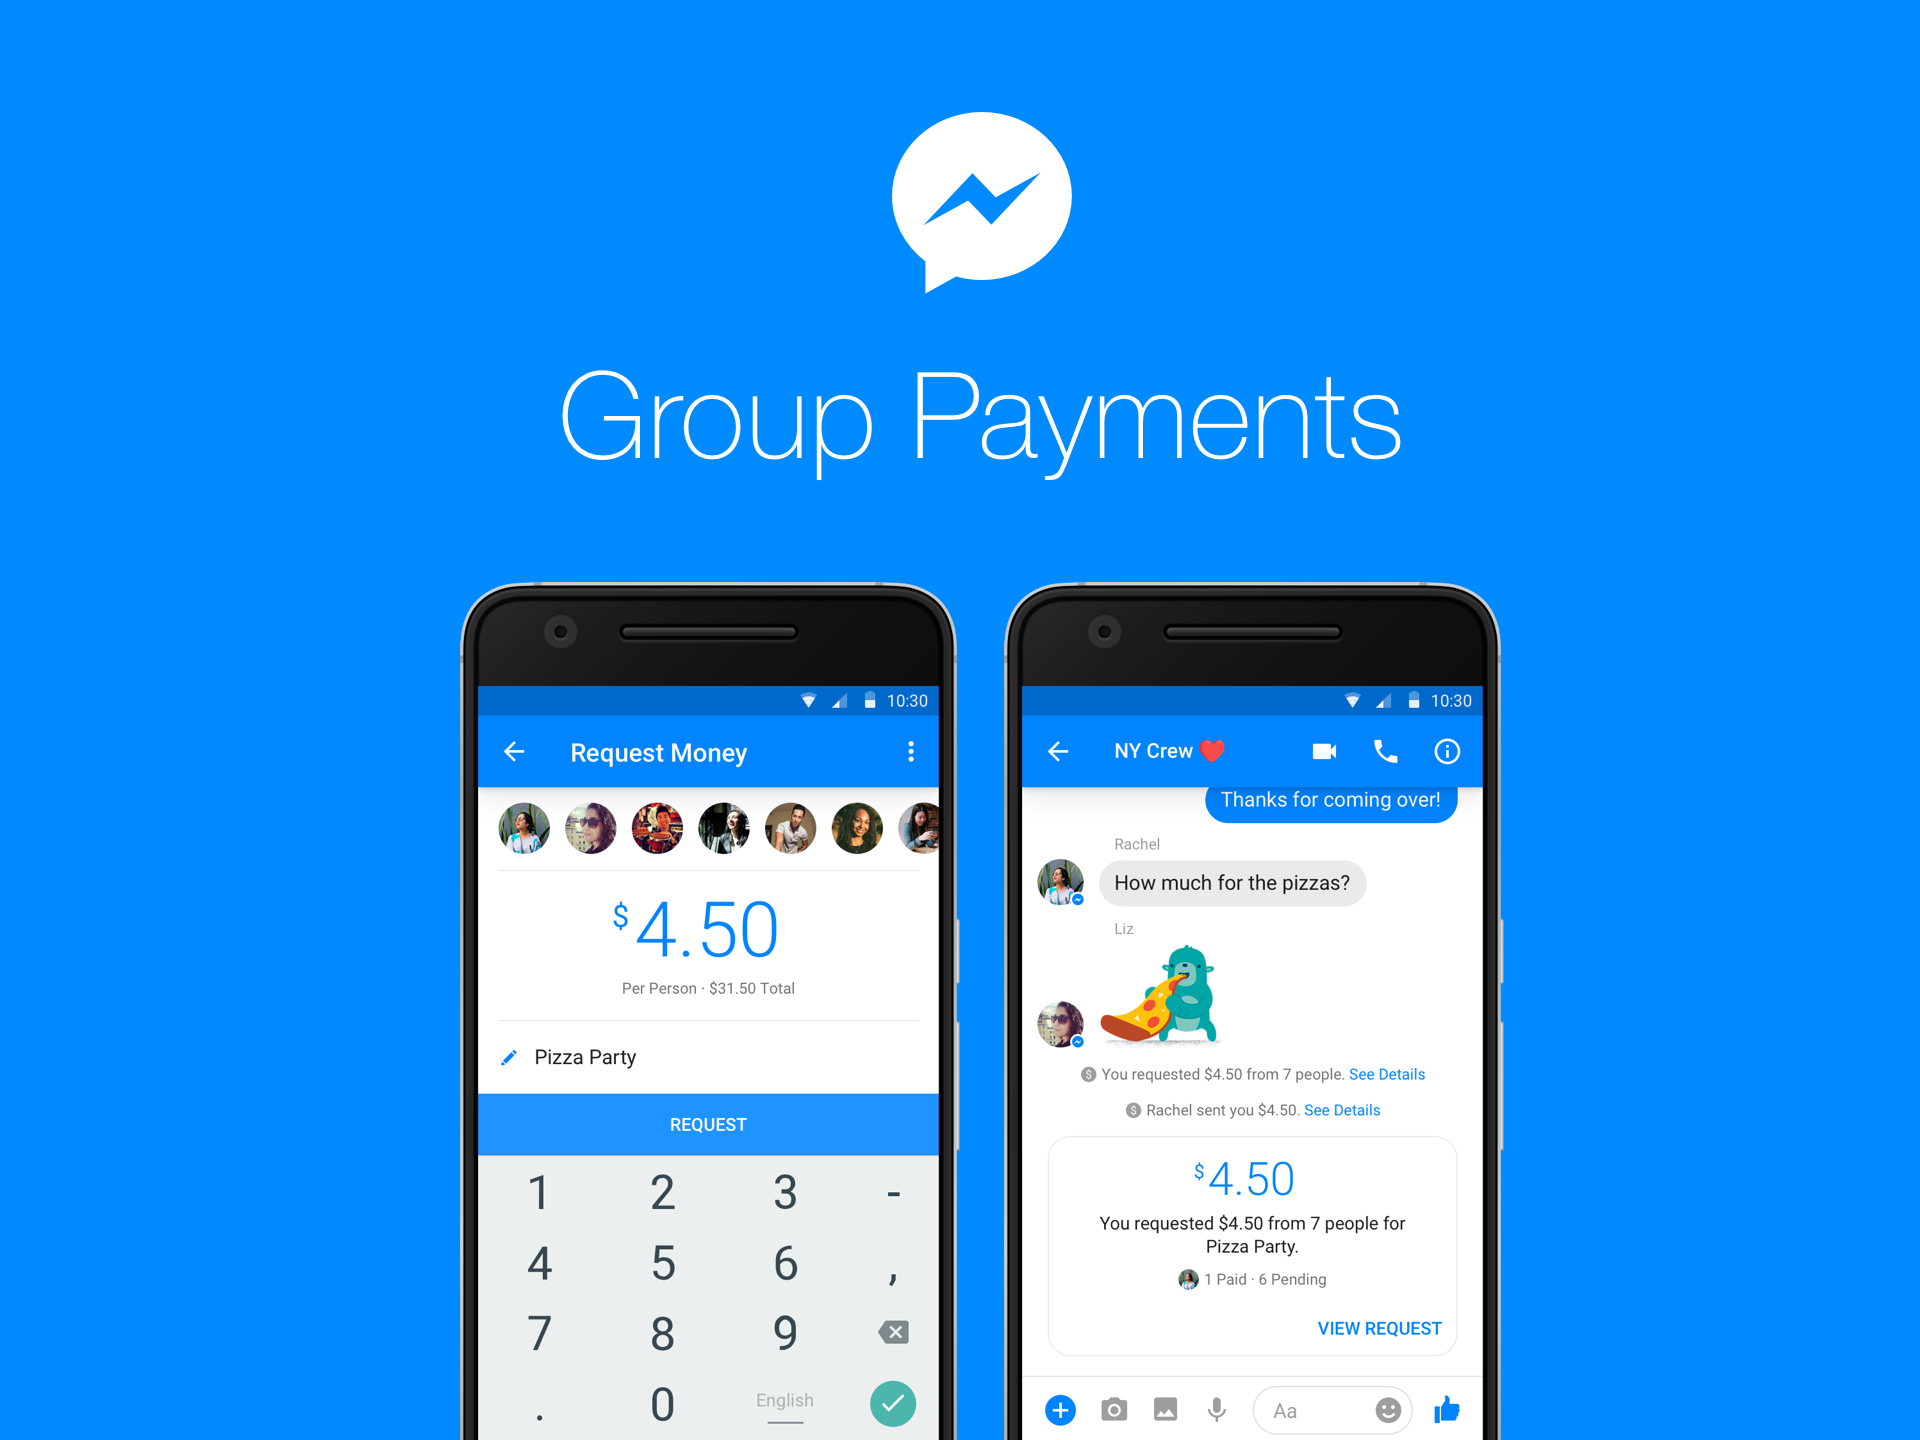 Facebook reportedly beta testing payments feature in India in its Messenger app